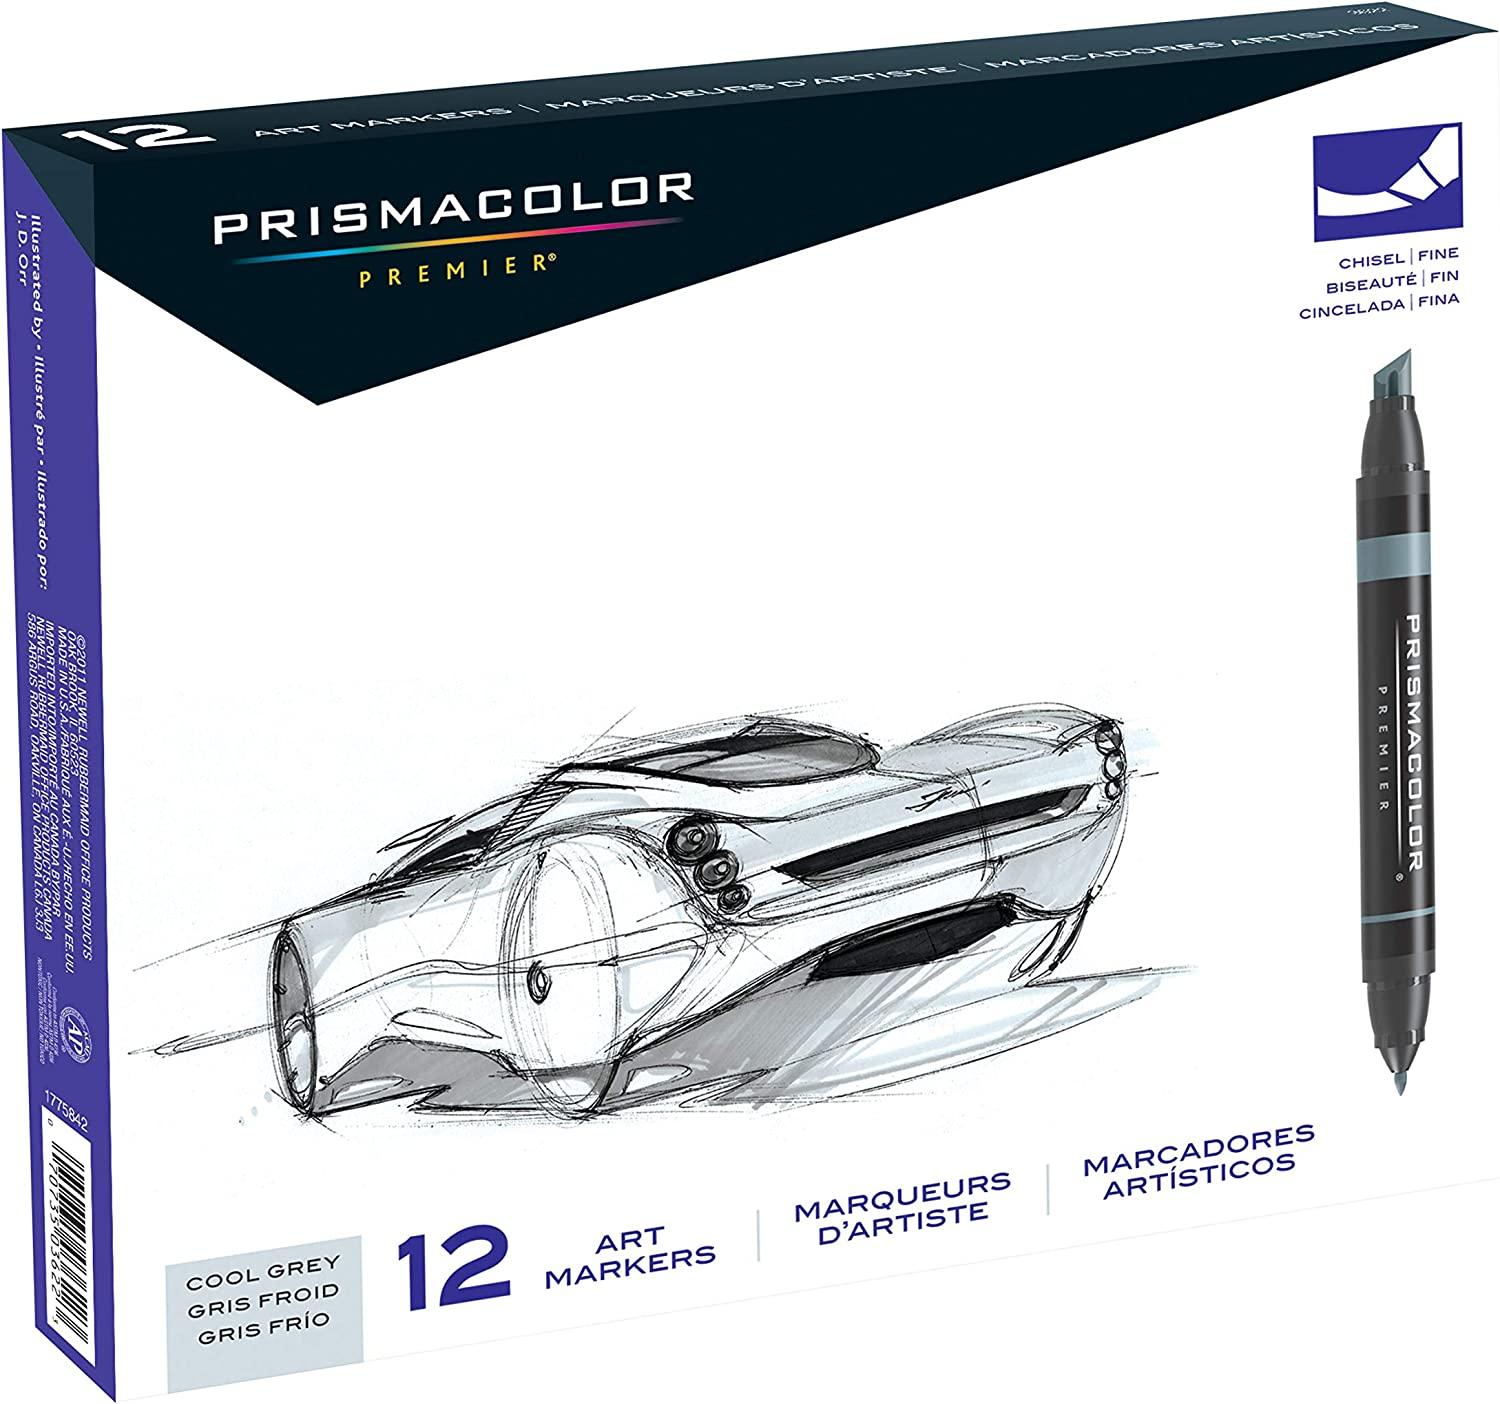 Prismacolor 3622 Premier Double-Ended Art Markers, Fine and Chisel Tip, Cool Grey, 12-Count